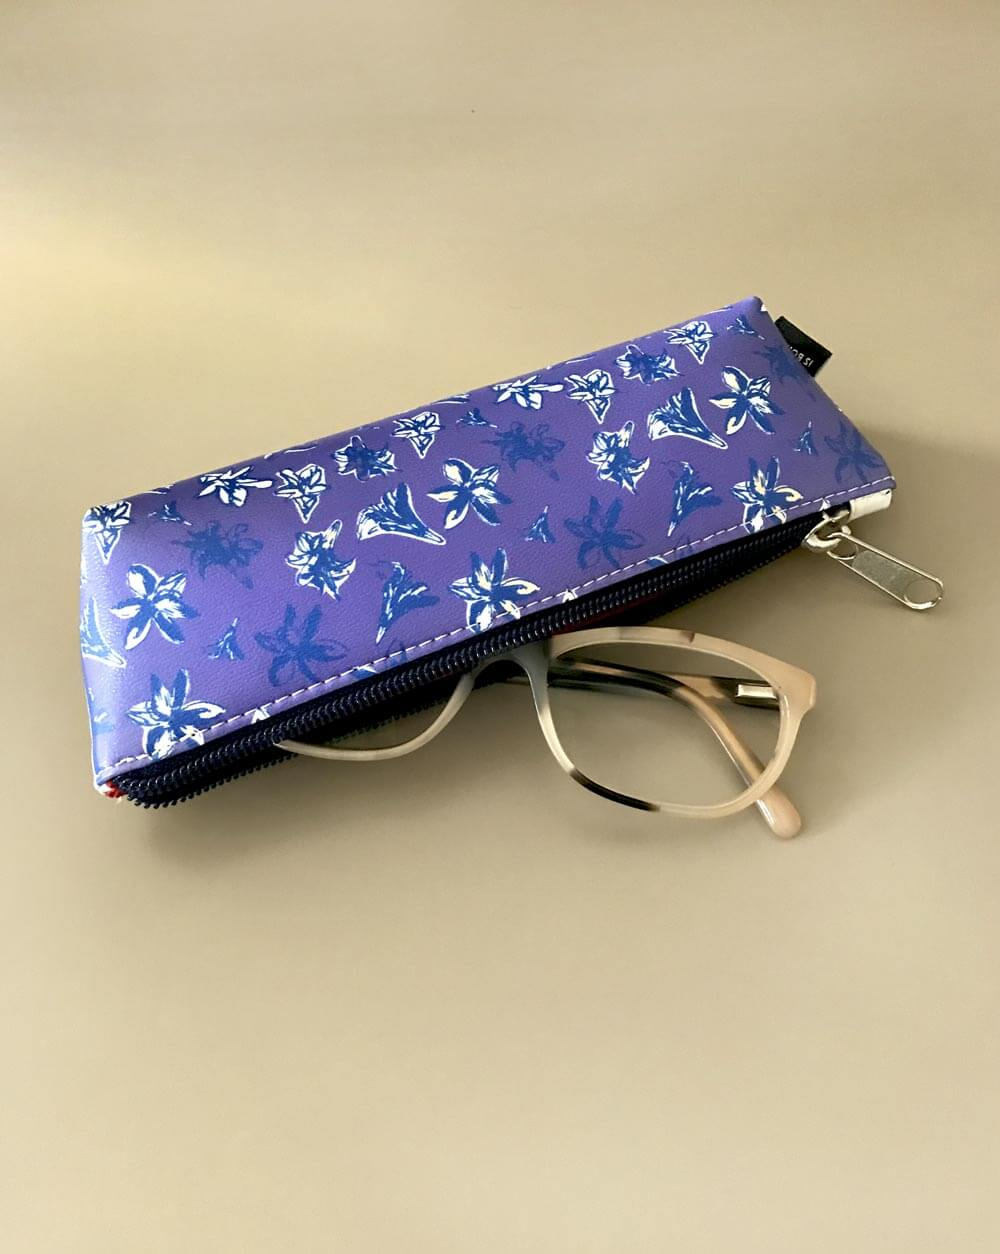 Blossom BL Pencil Case Estuche Estojo